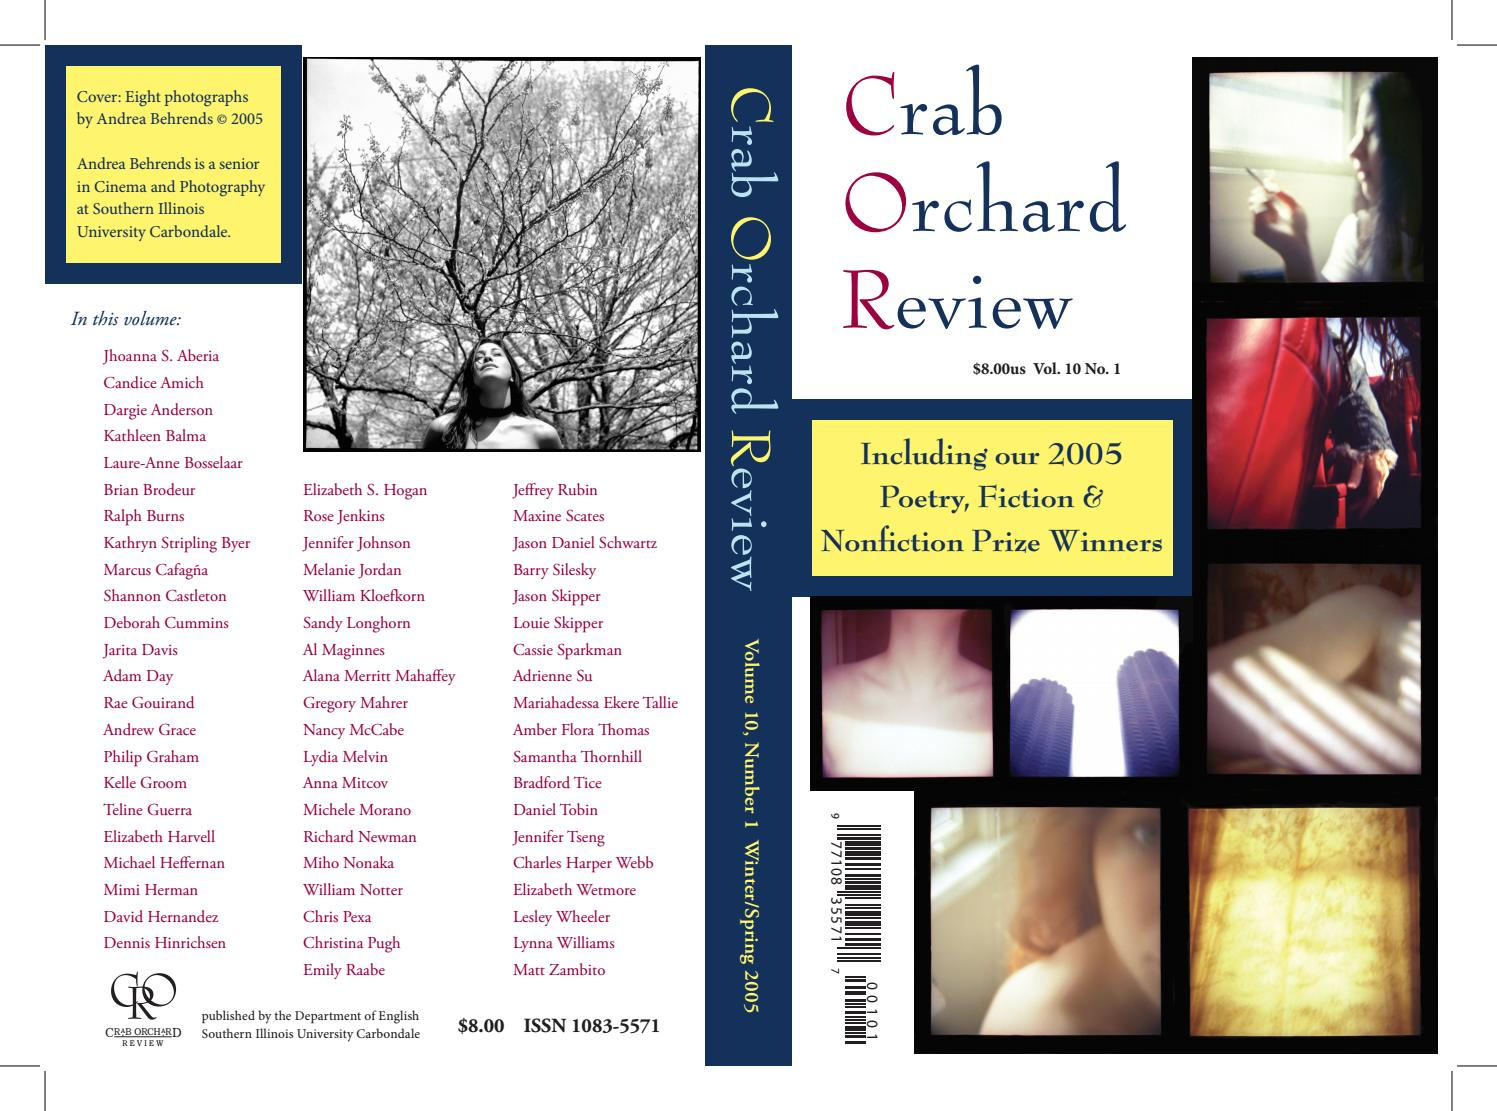 d1070281a Crab Orchard Review Vol 10 No 1 W/S 2005 by Crab Orchard Review - issuu